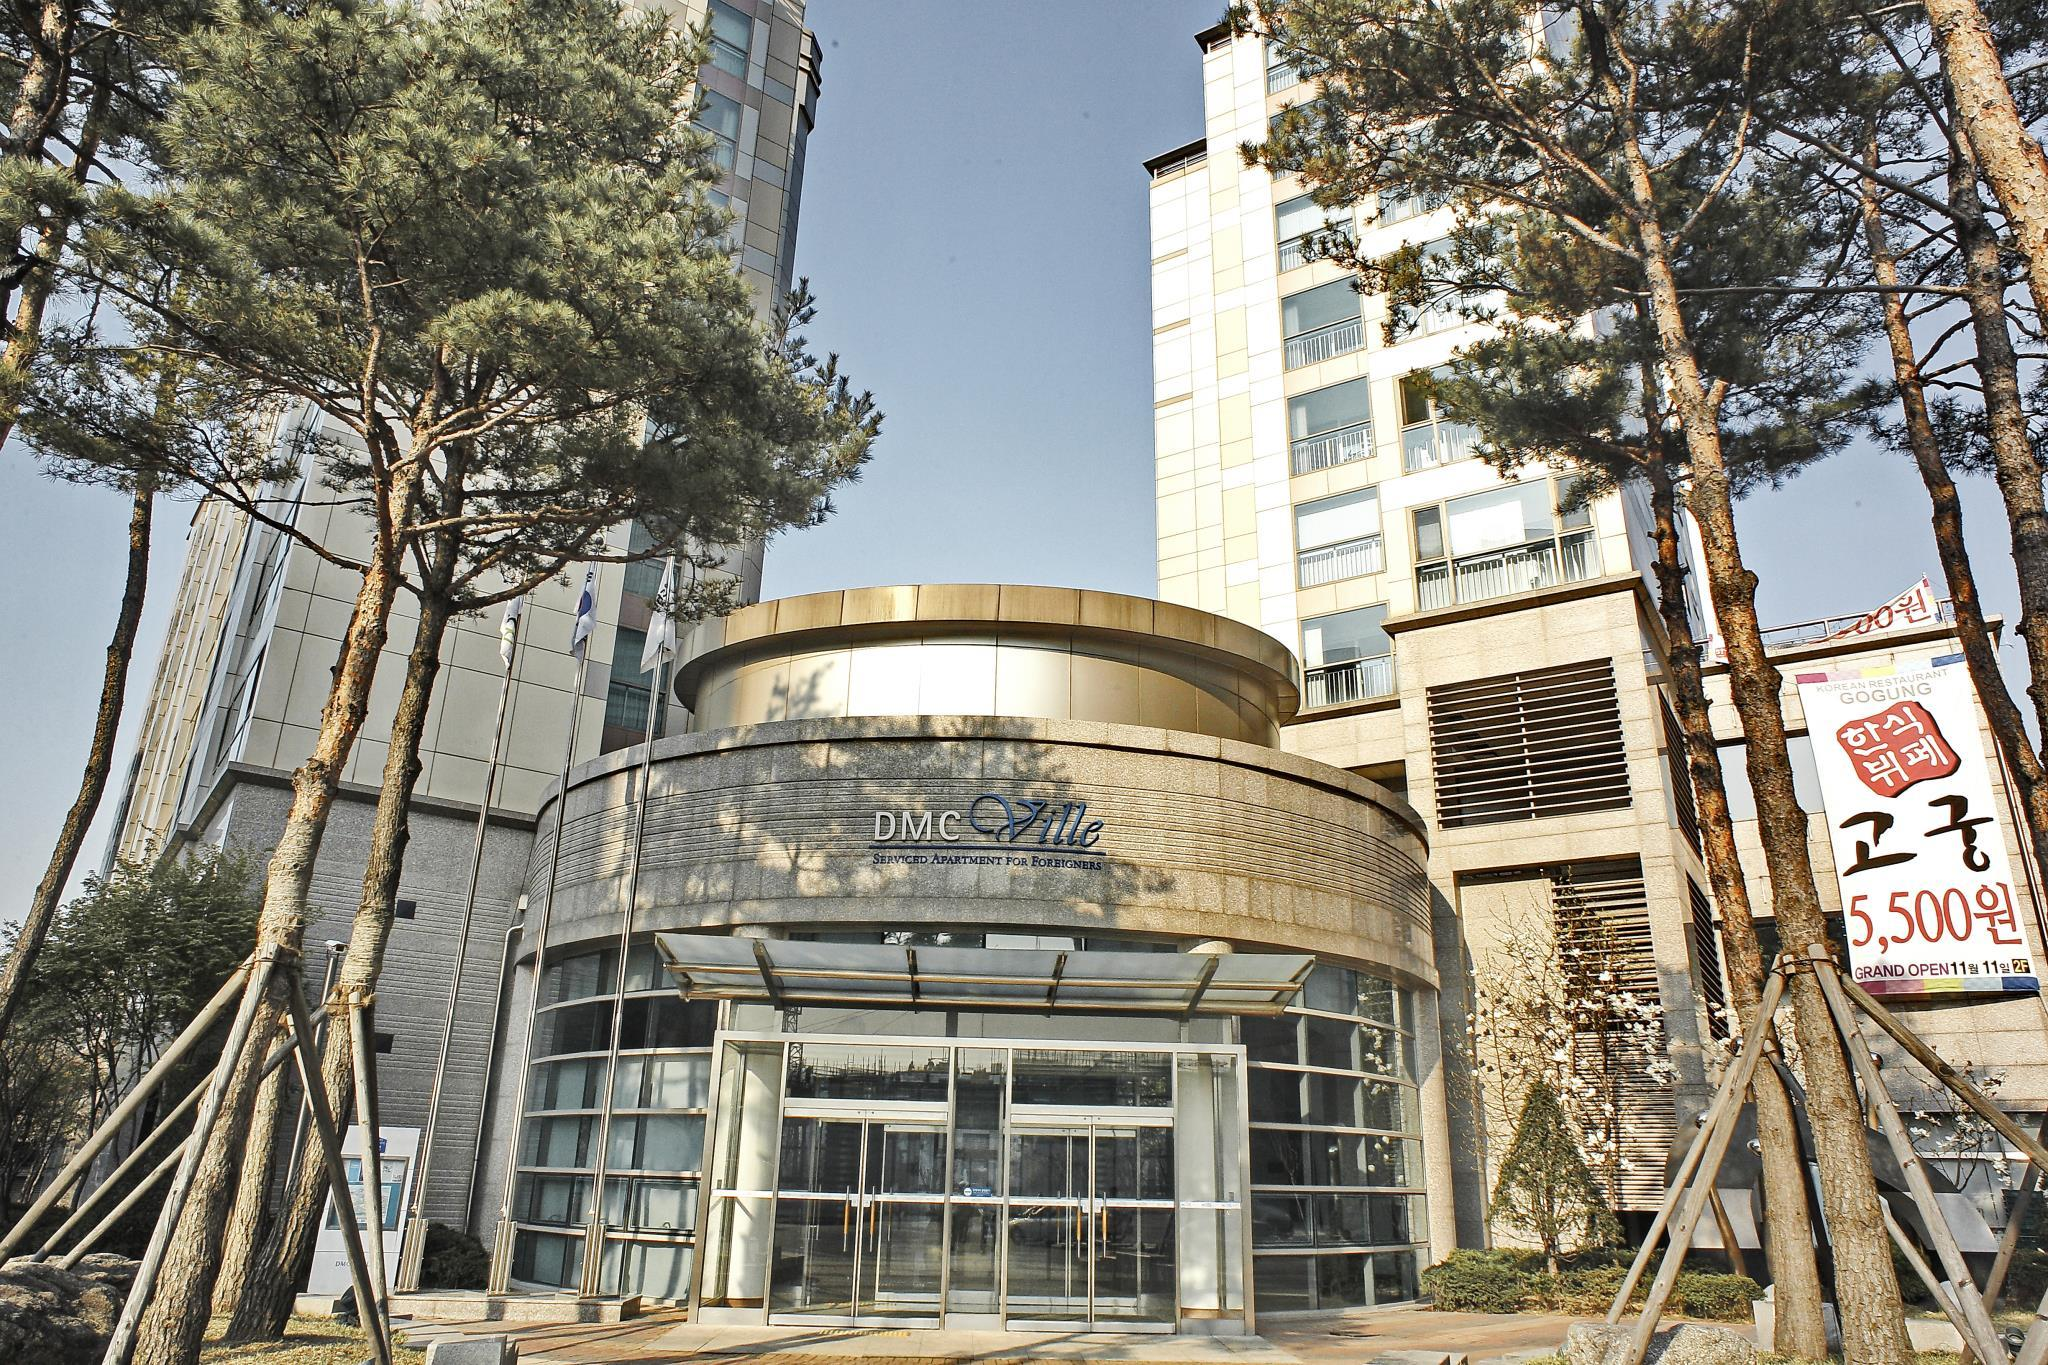 DMC Ville Serviced Apartment For Foreigners